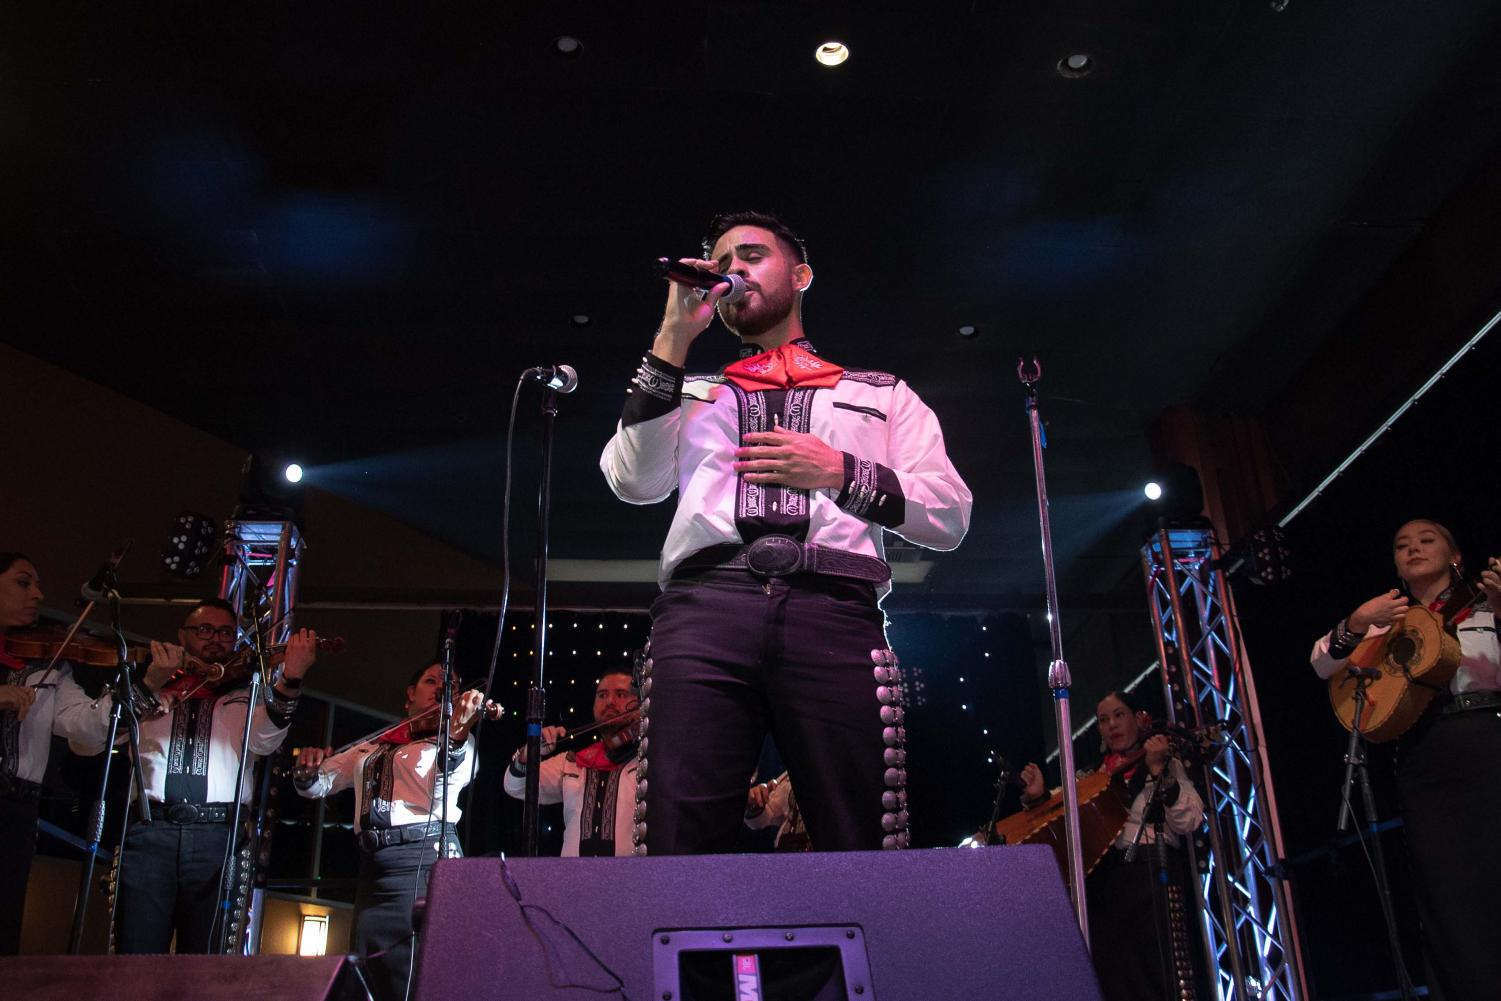 Sunland Park Racetrack & Casino hosted the Mariachi Festival at the Park Saturday Aug. 24.